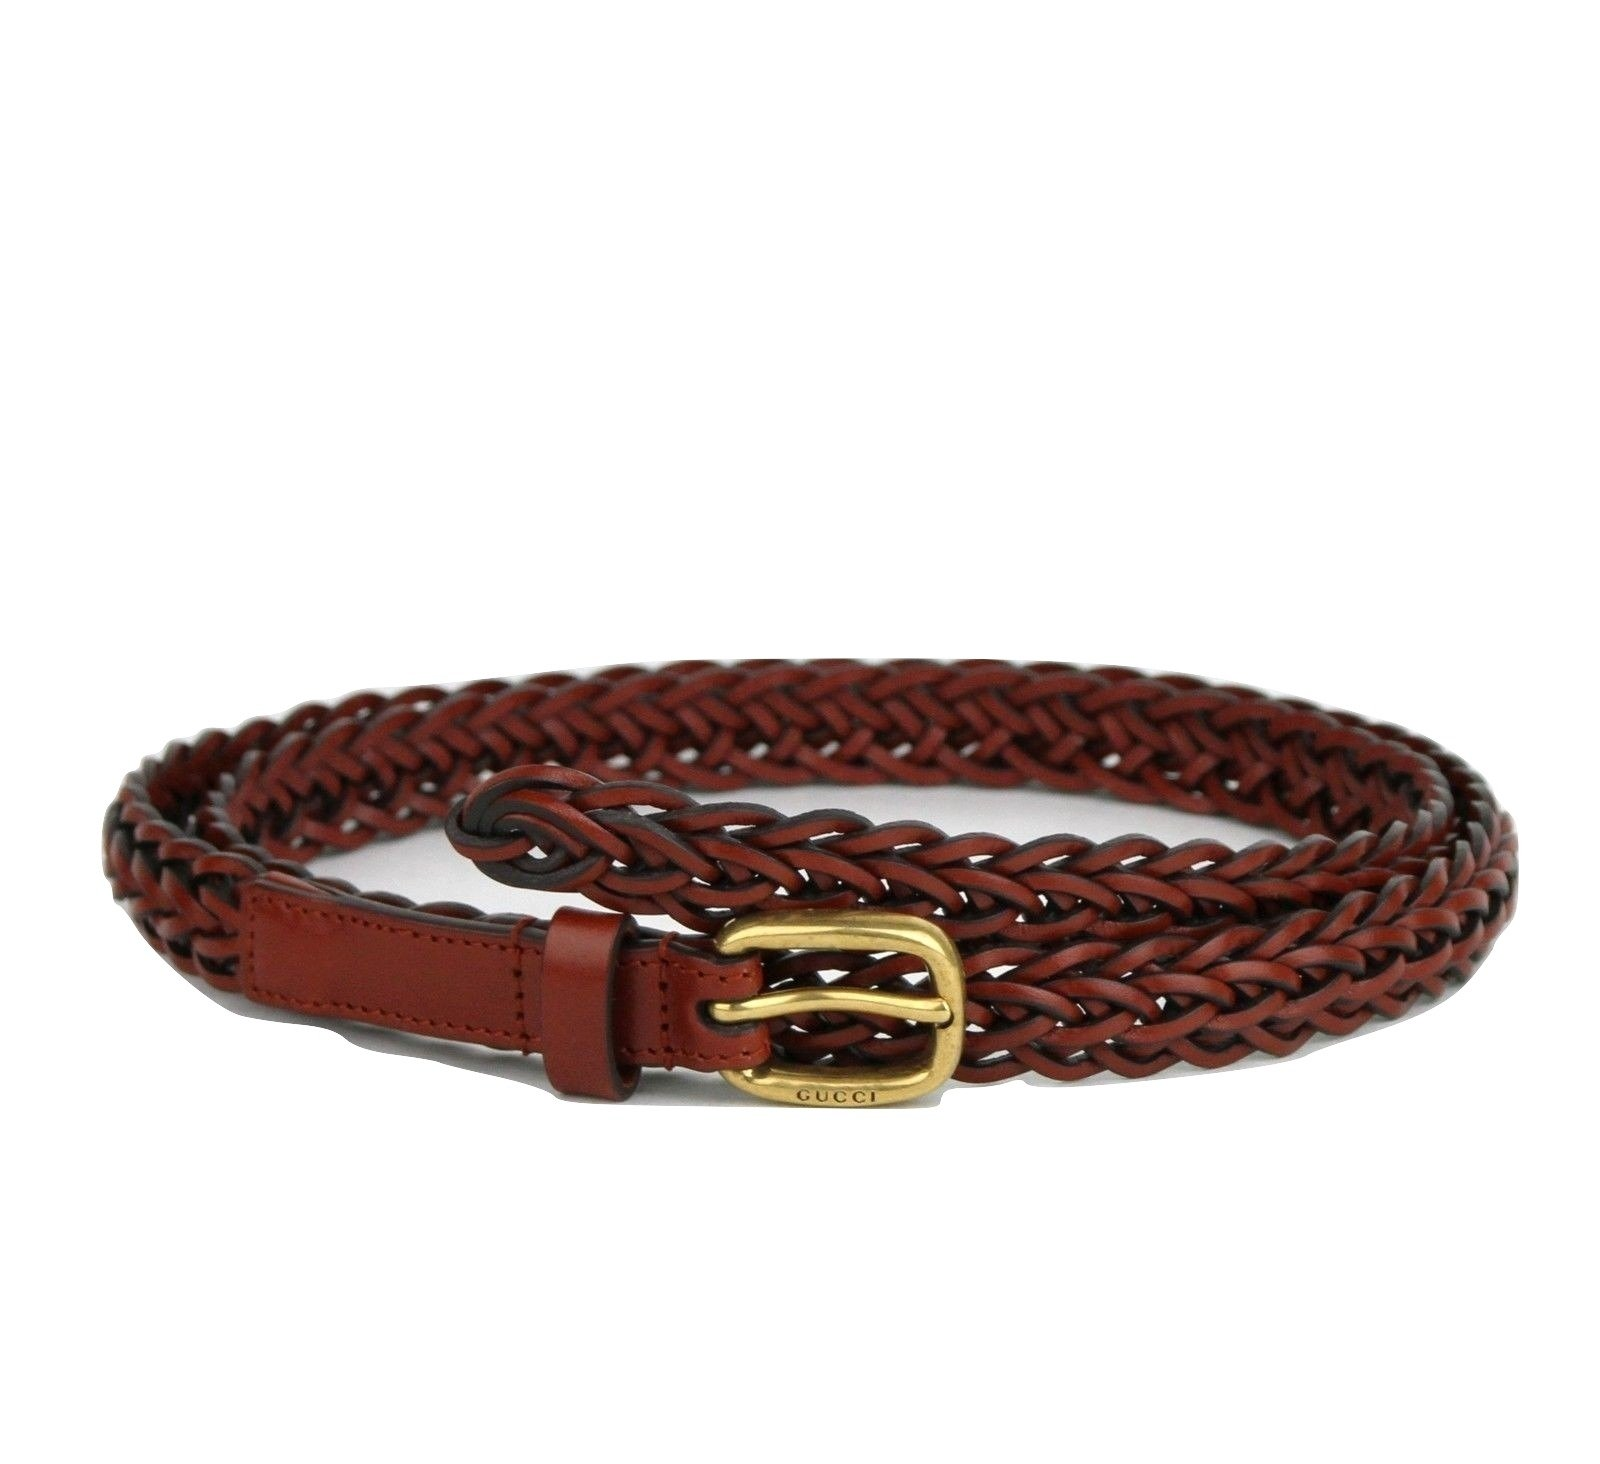 Gucci Women's Braided Red Leather Skinny Belt 380607 7508 (80 / 32)